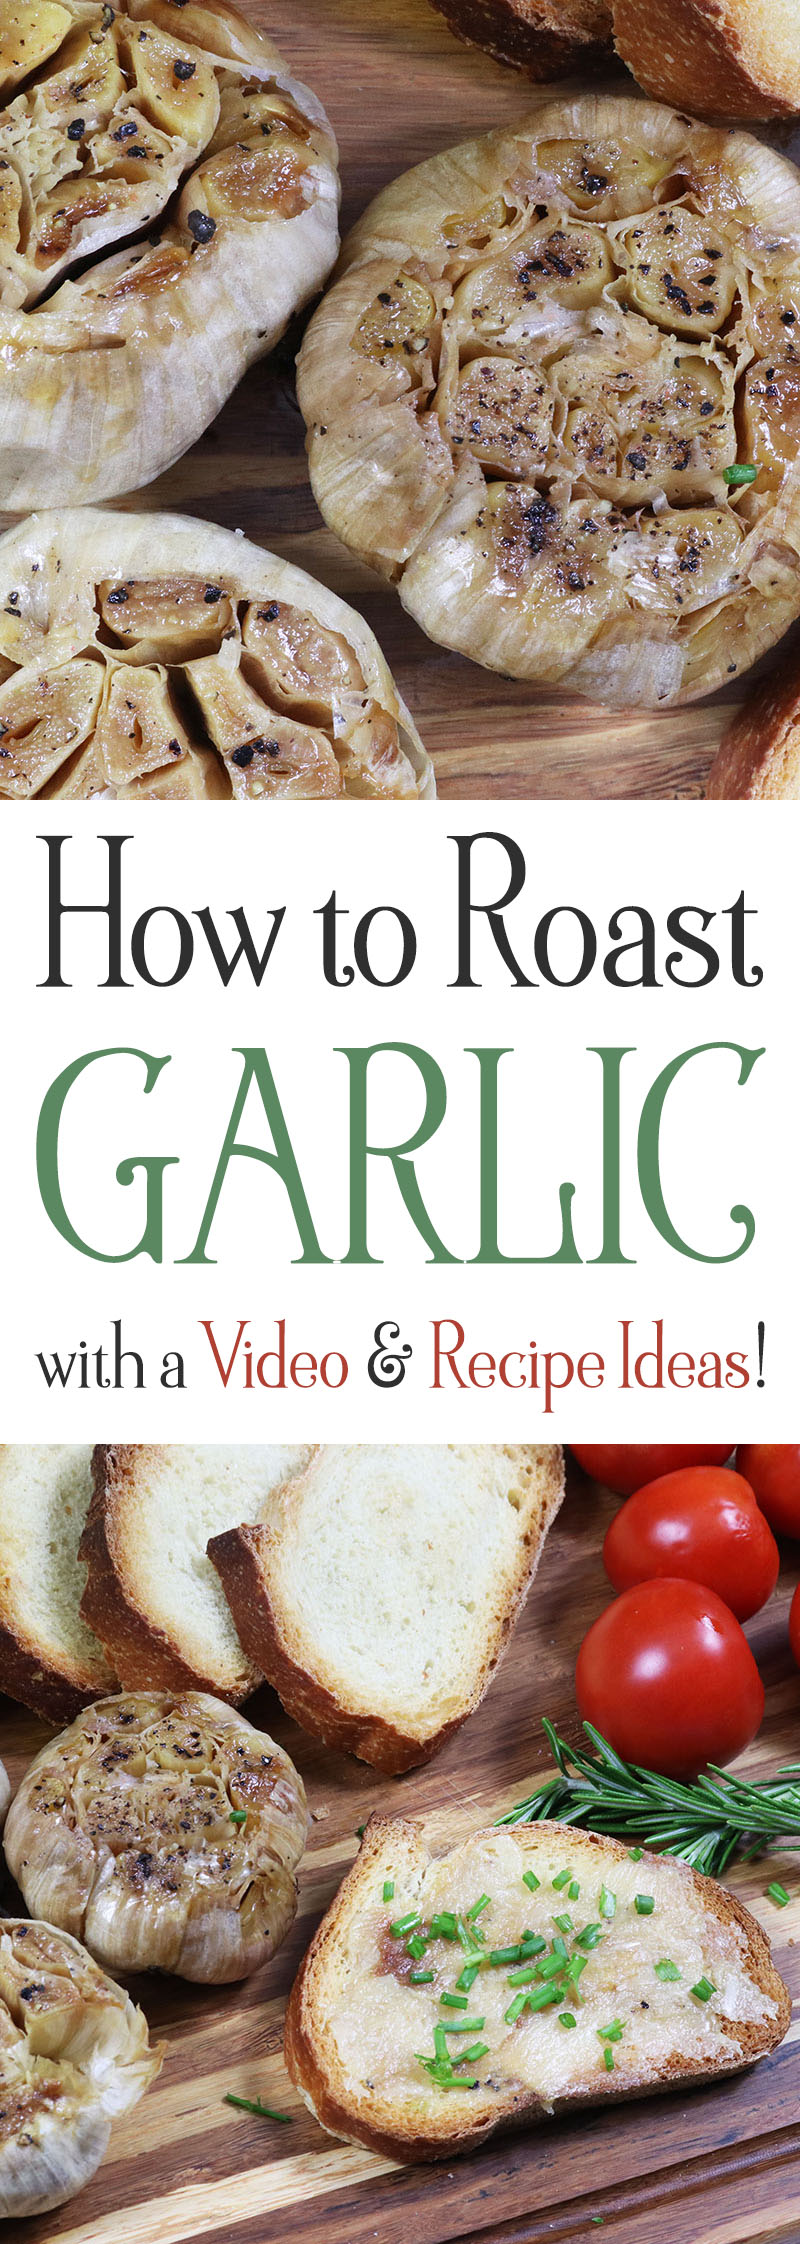 Come on in and enjoy our little video on How to Roast Garlic ... you will enjoy the Recipe... the Video and when you make it... you will flip for the taste!